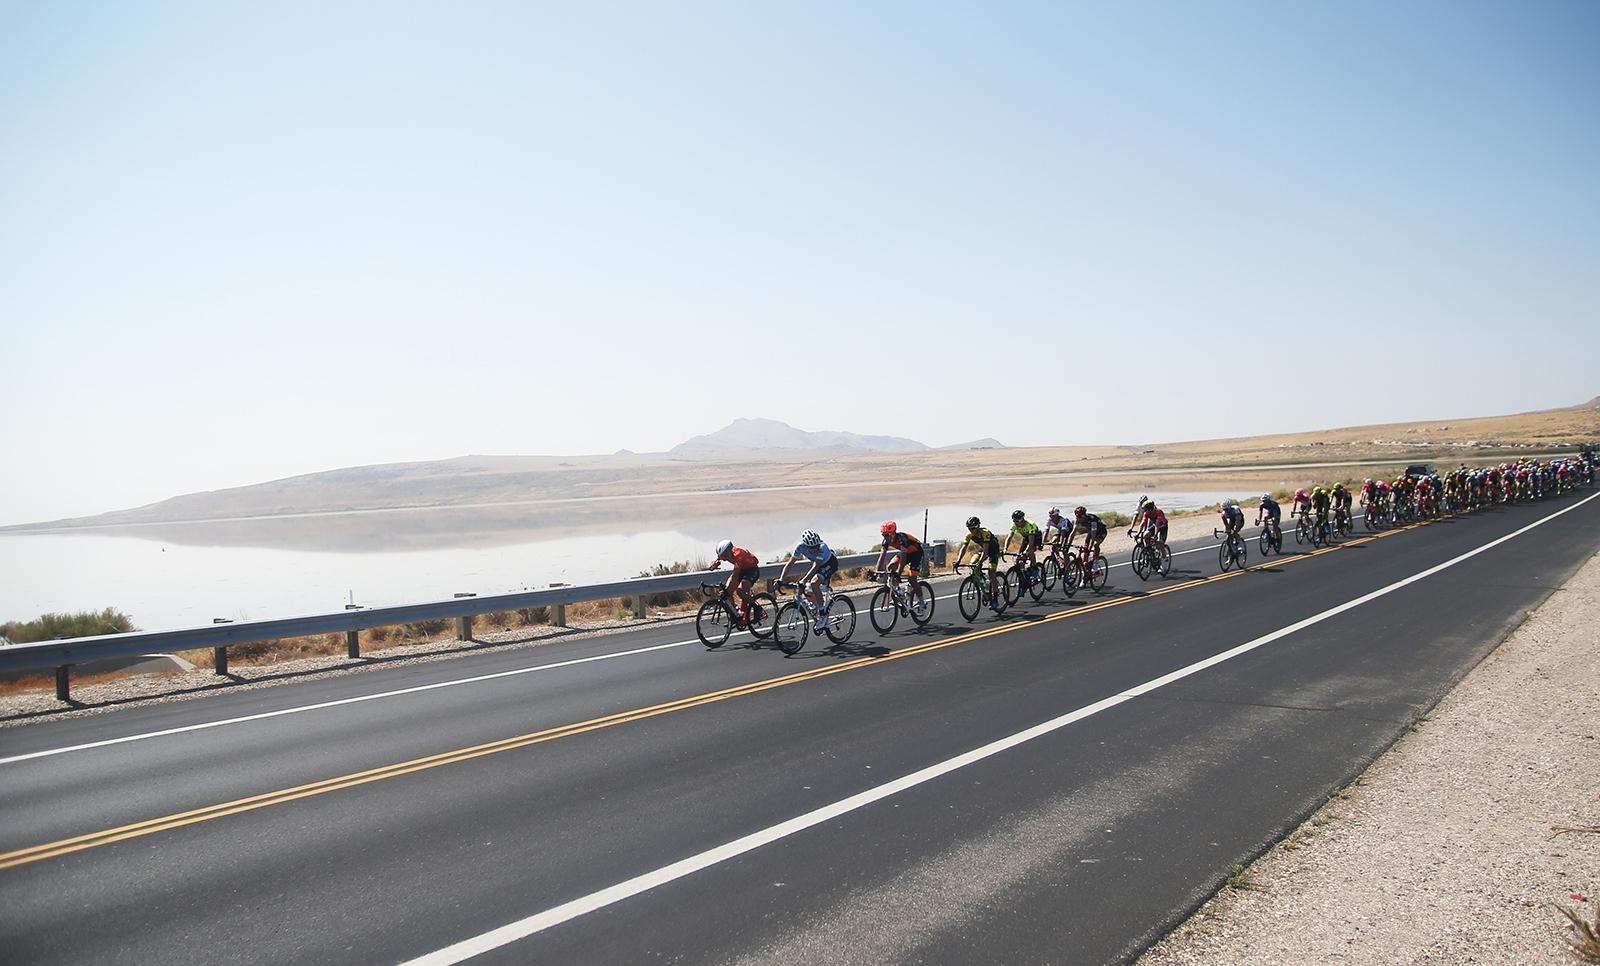 The causeway. 2018 Tour of Utah Stage 3, August 8, 2018, Layton, Utah. Photo by Cathy Fegan-Kim, cottonsoxphotography.net